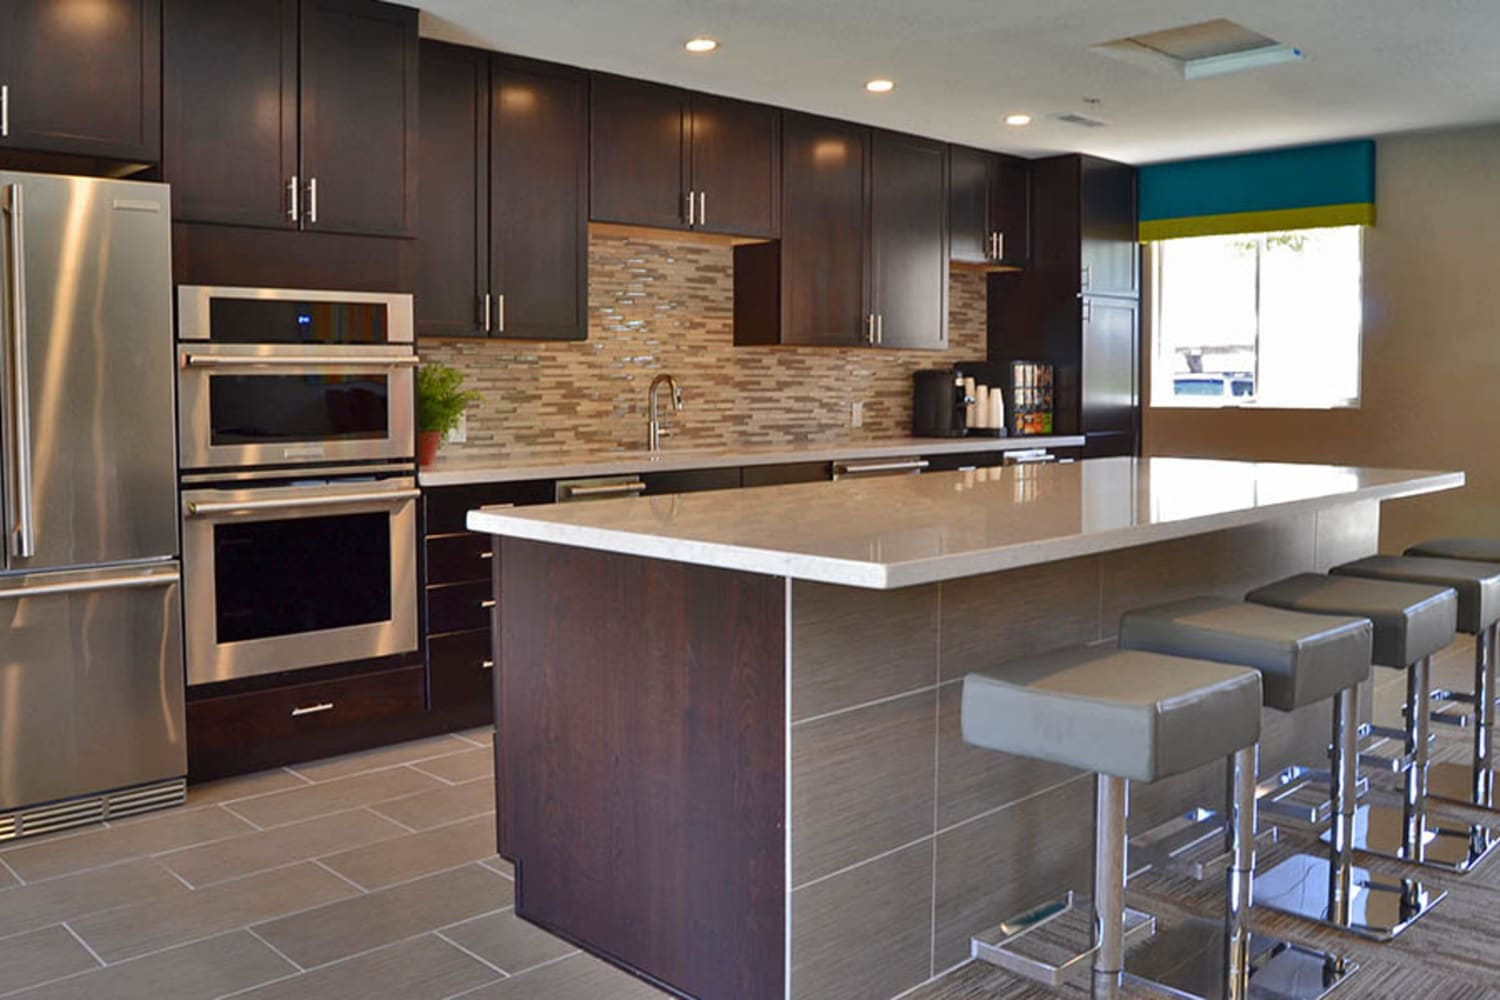 2150 Arizona Ave South in Chandler, Arizona, has a large clubhouse kitchen